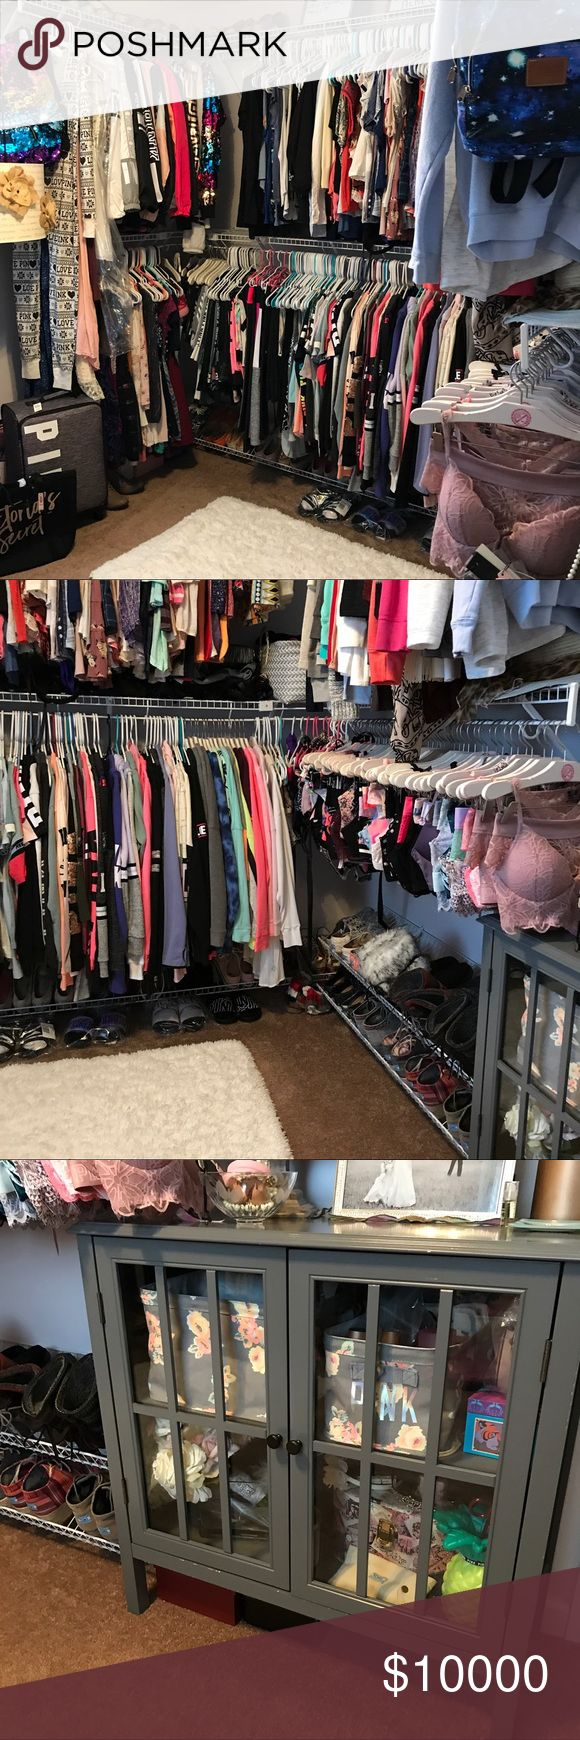 My Closet! Not for sale, just showing my closet! 🎀 currently working on getting all my PINK clothes onto PINK hangers 😊. Also, trying to find a cute way to display bedding without a bed! Lol any ideas, lmk! PINK Victoria's Secret Other